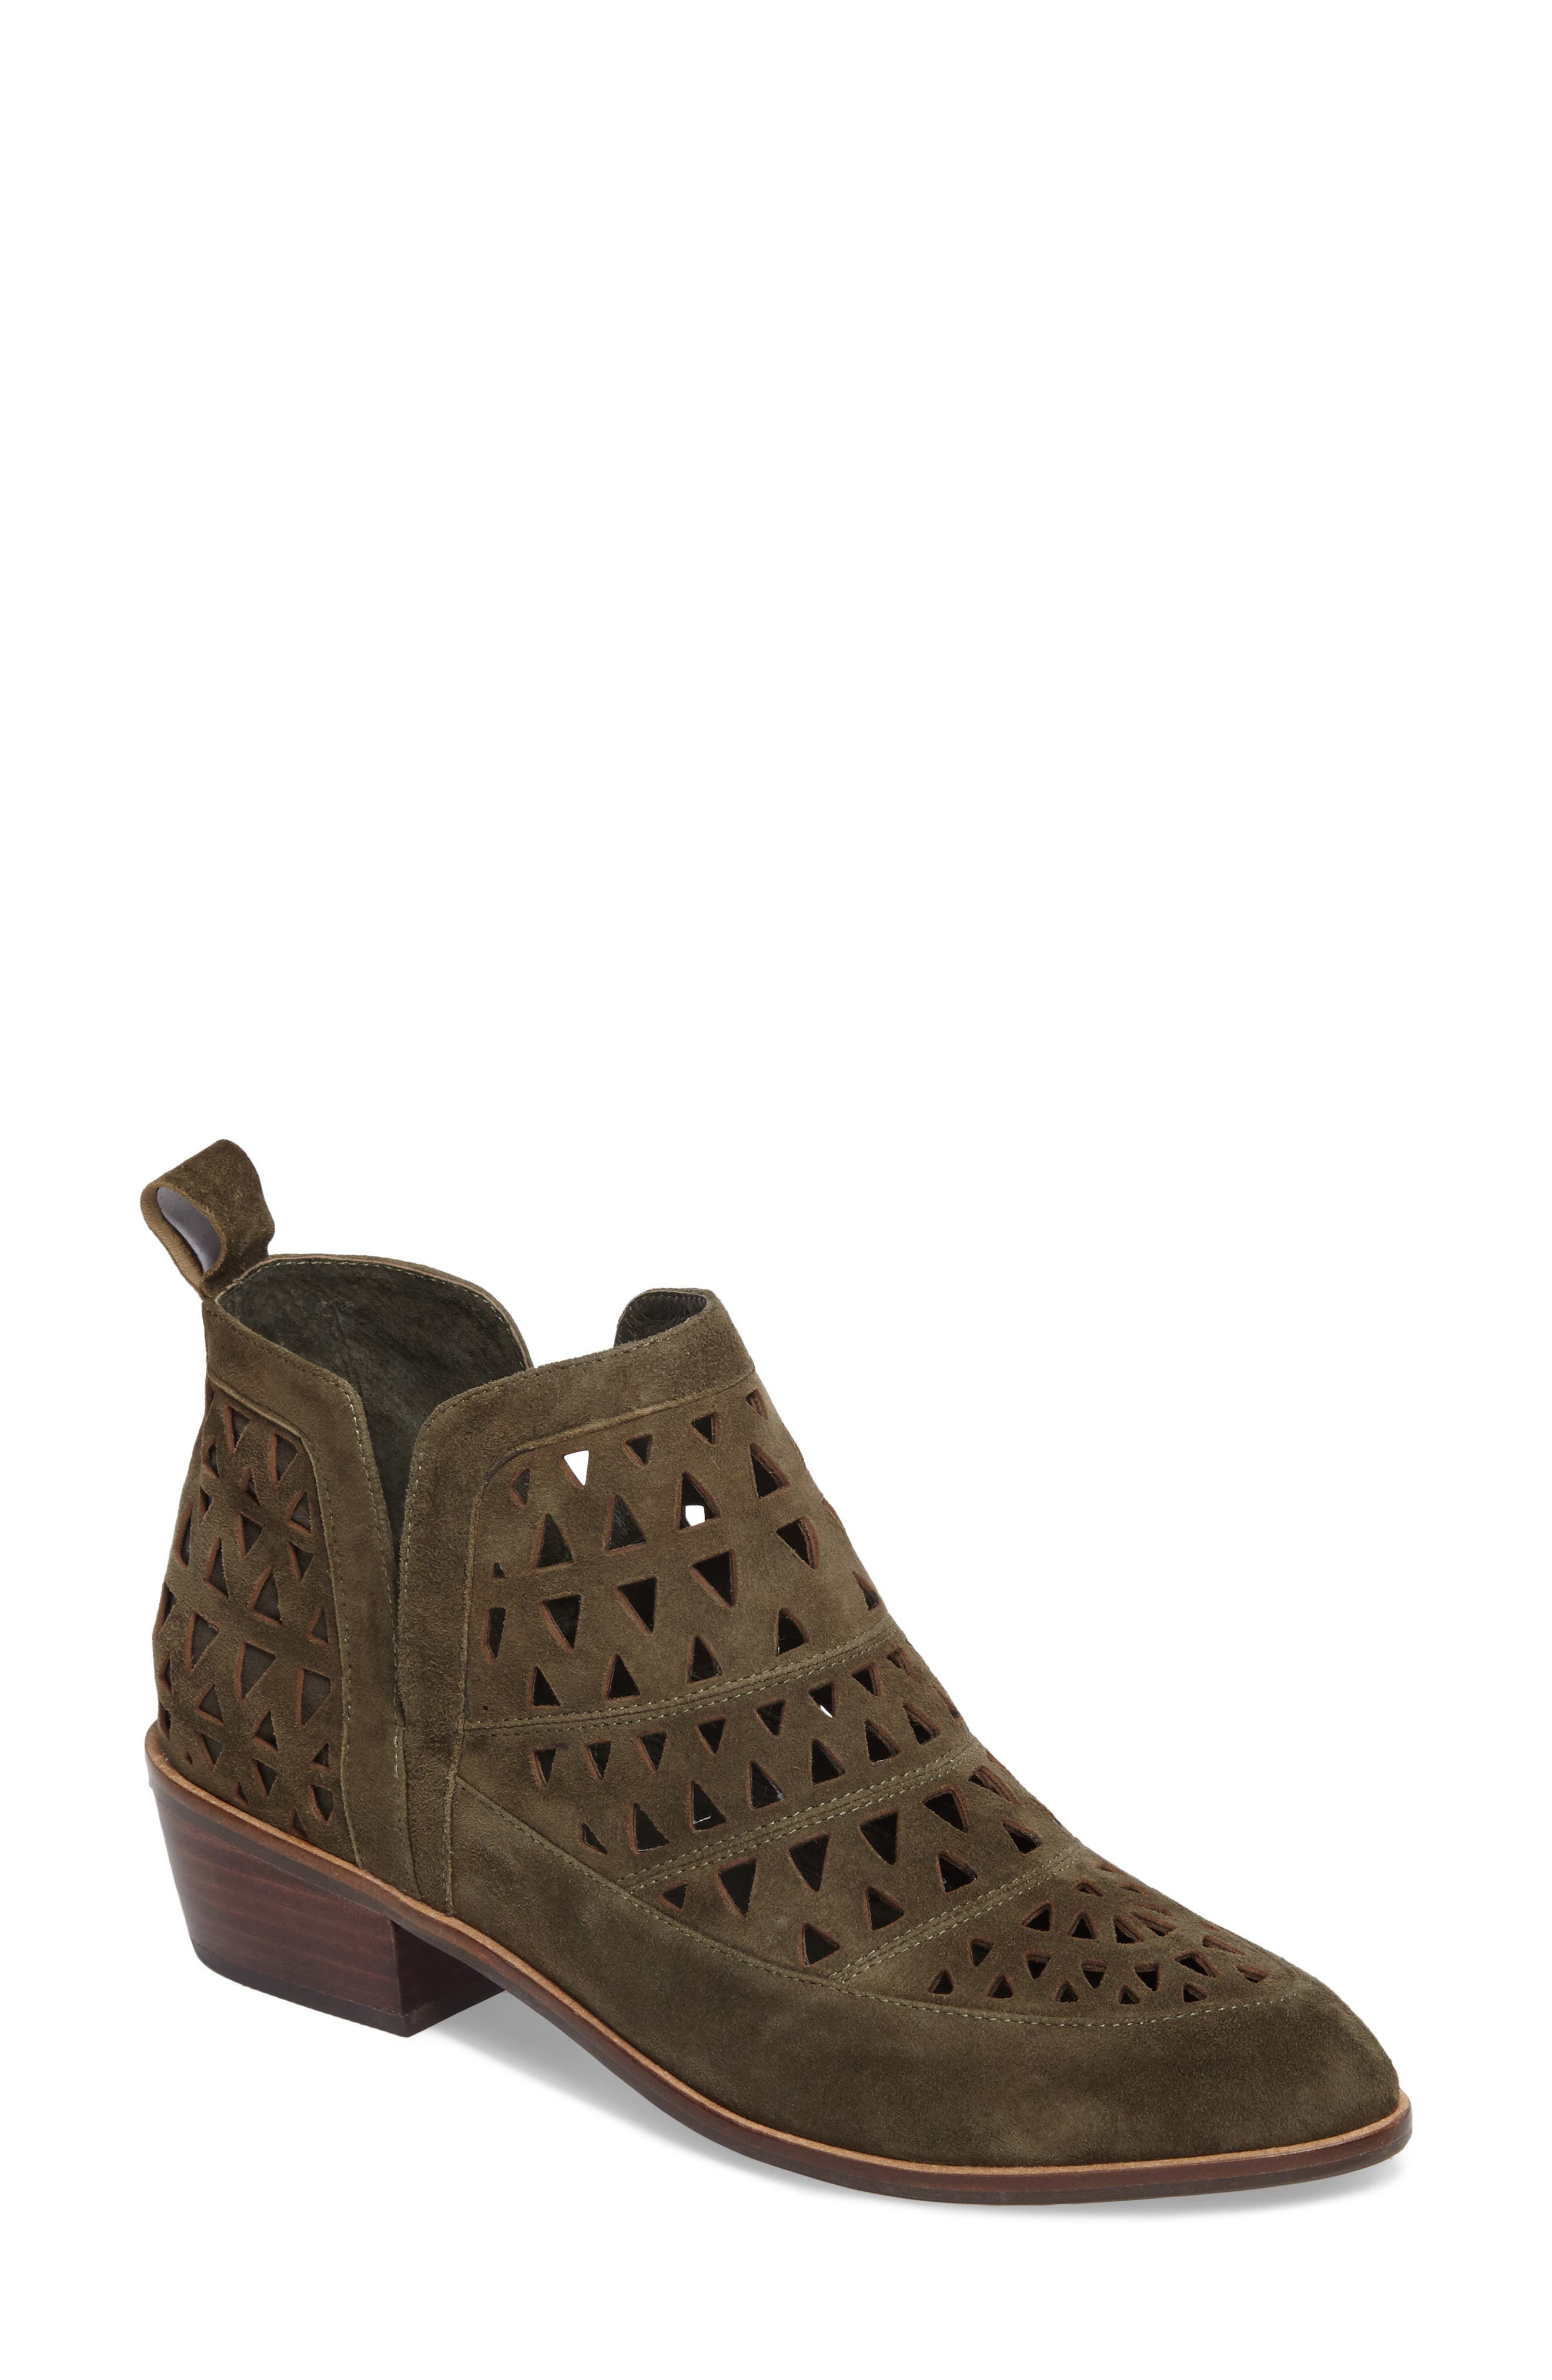 Catherine Cutout Bootie,                             Main thumbnail 1, color,                             Olive Suede